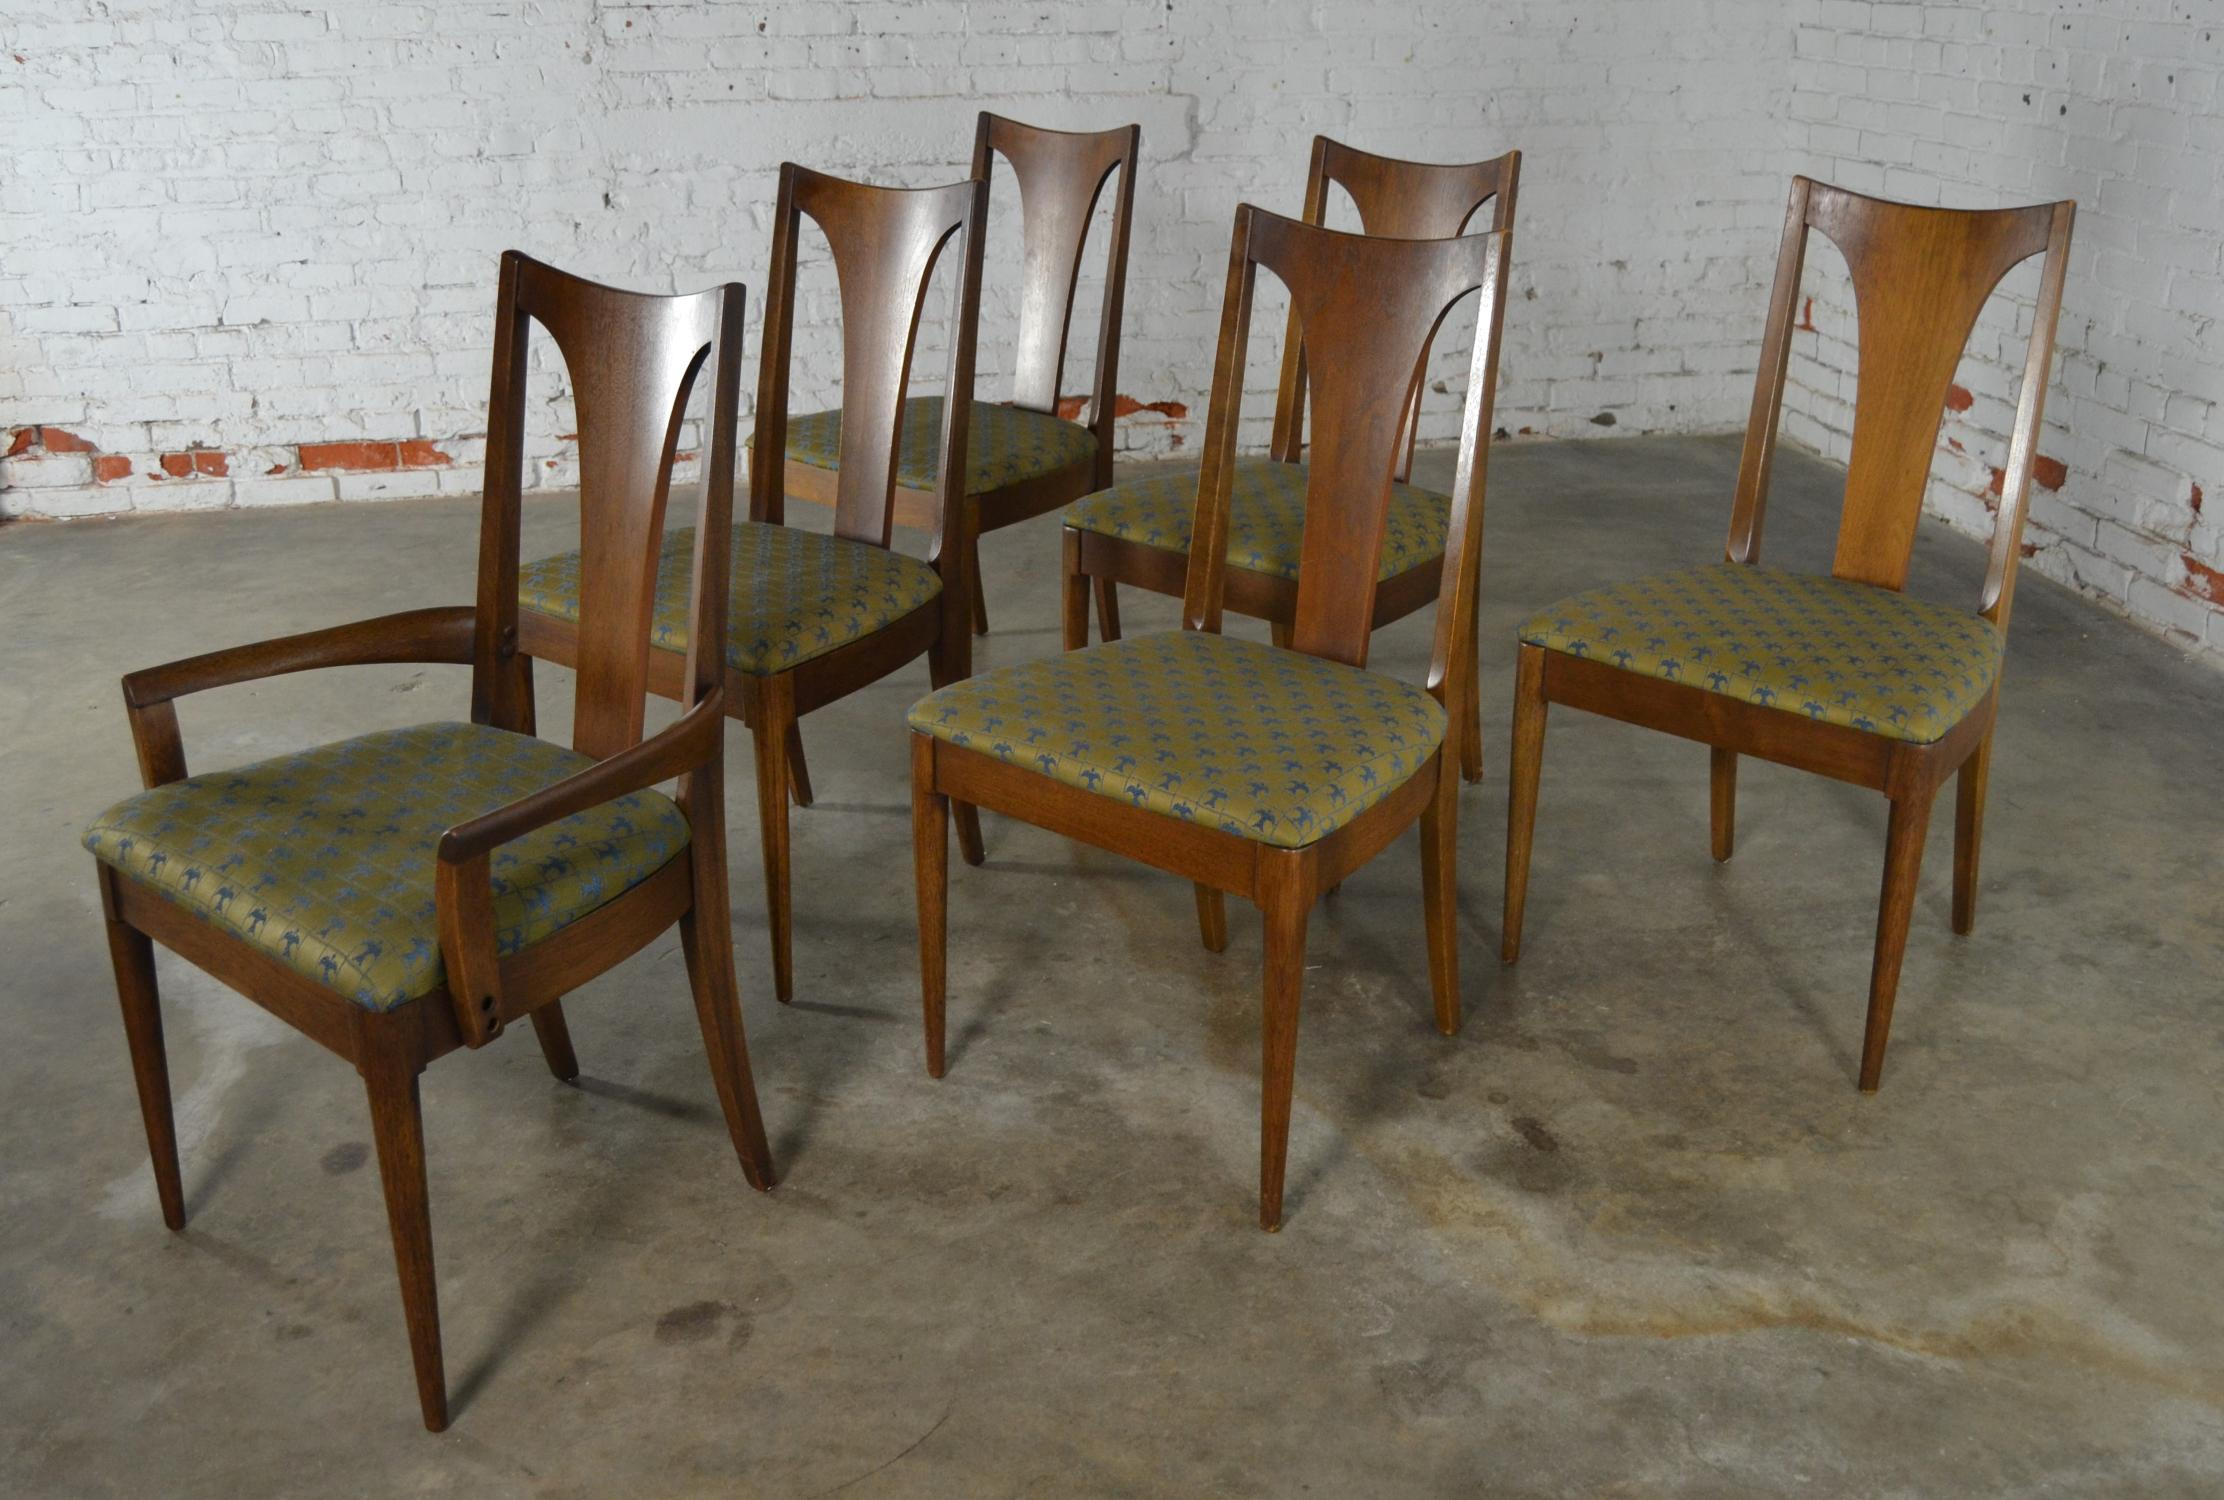 Broyhill Brasilia Mid Century Modern Broyhill Dining Chairs   Set Of 6 For  Sale